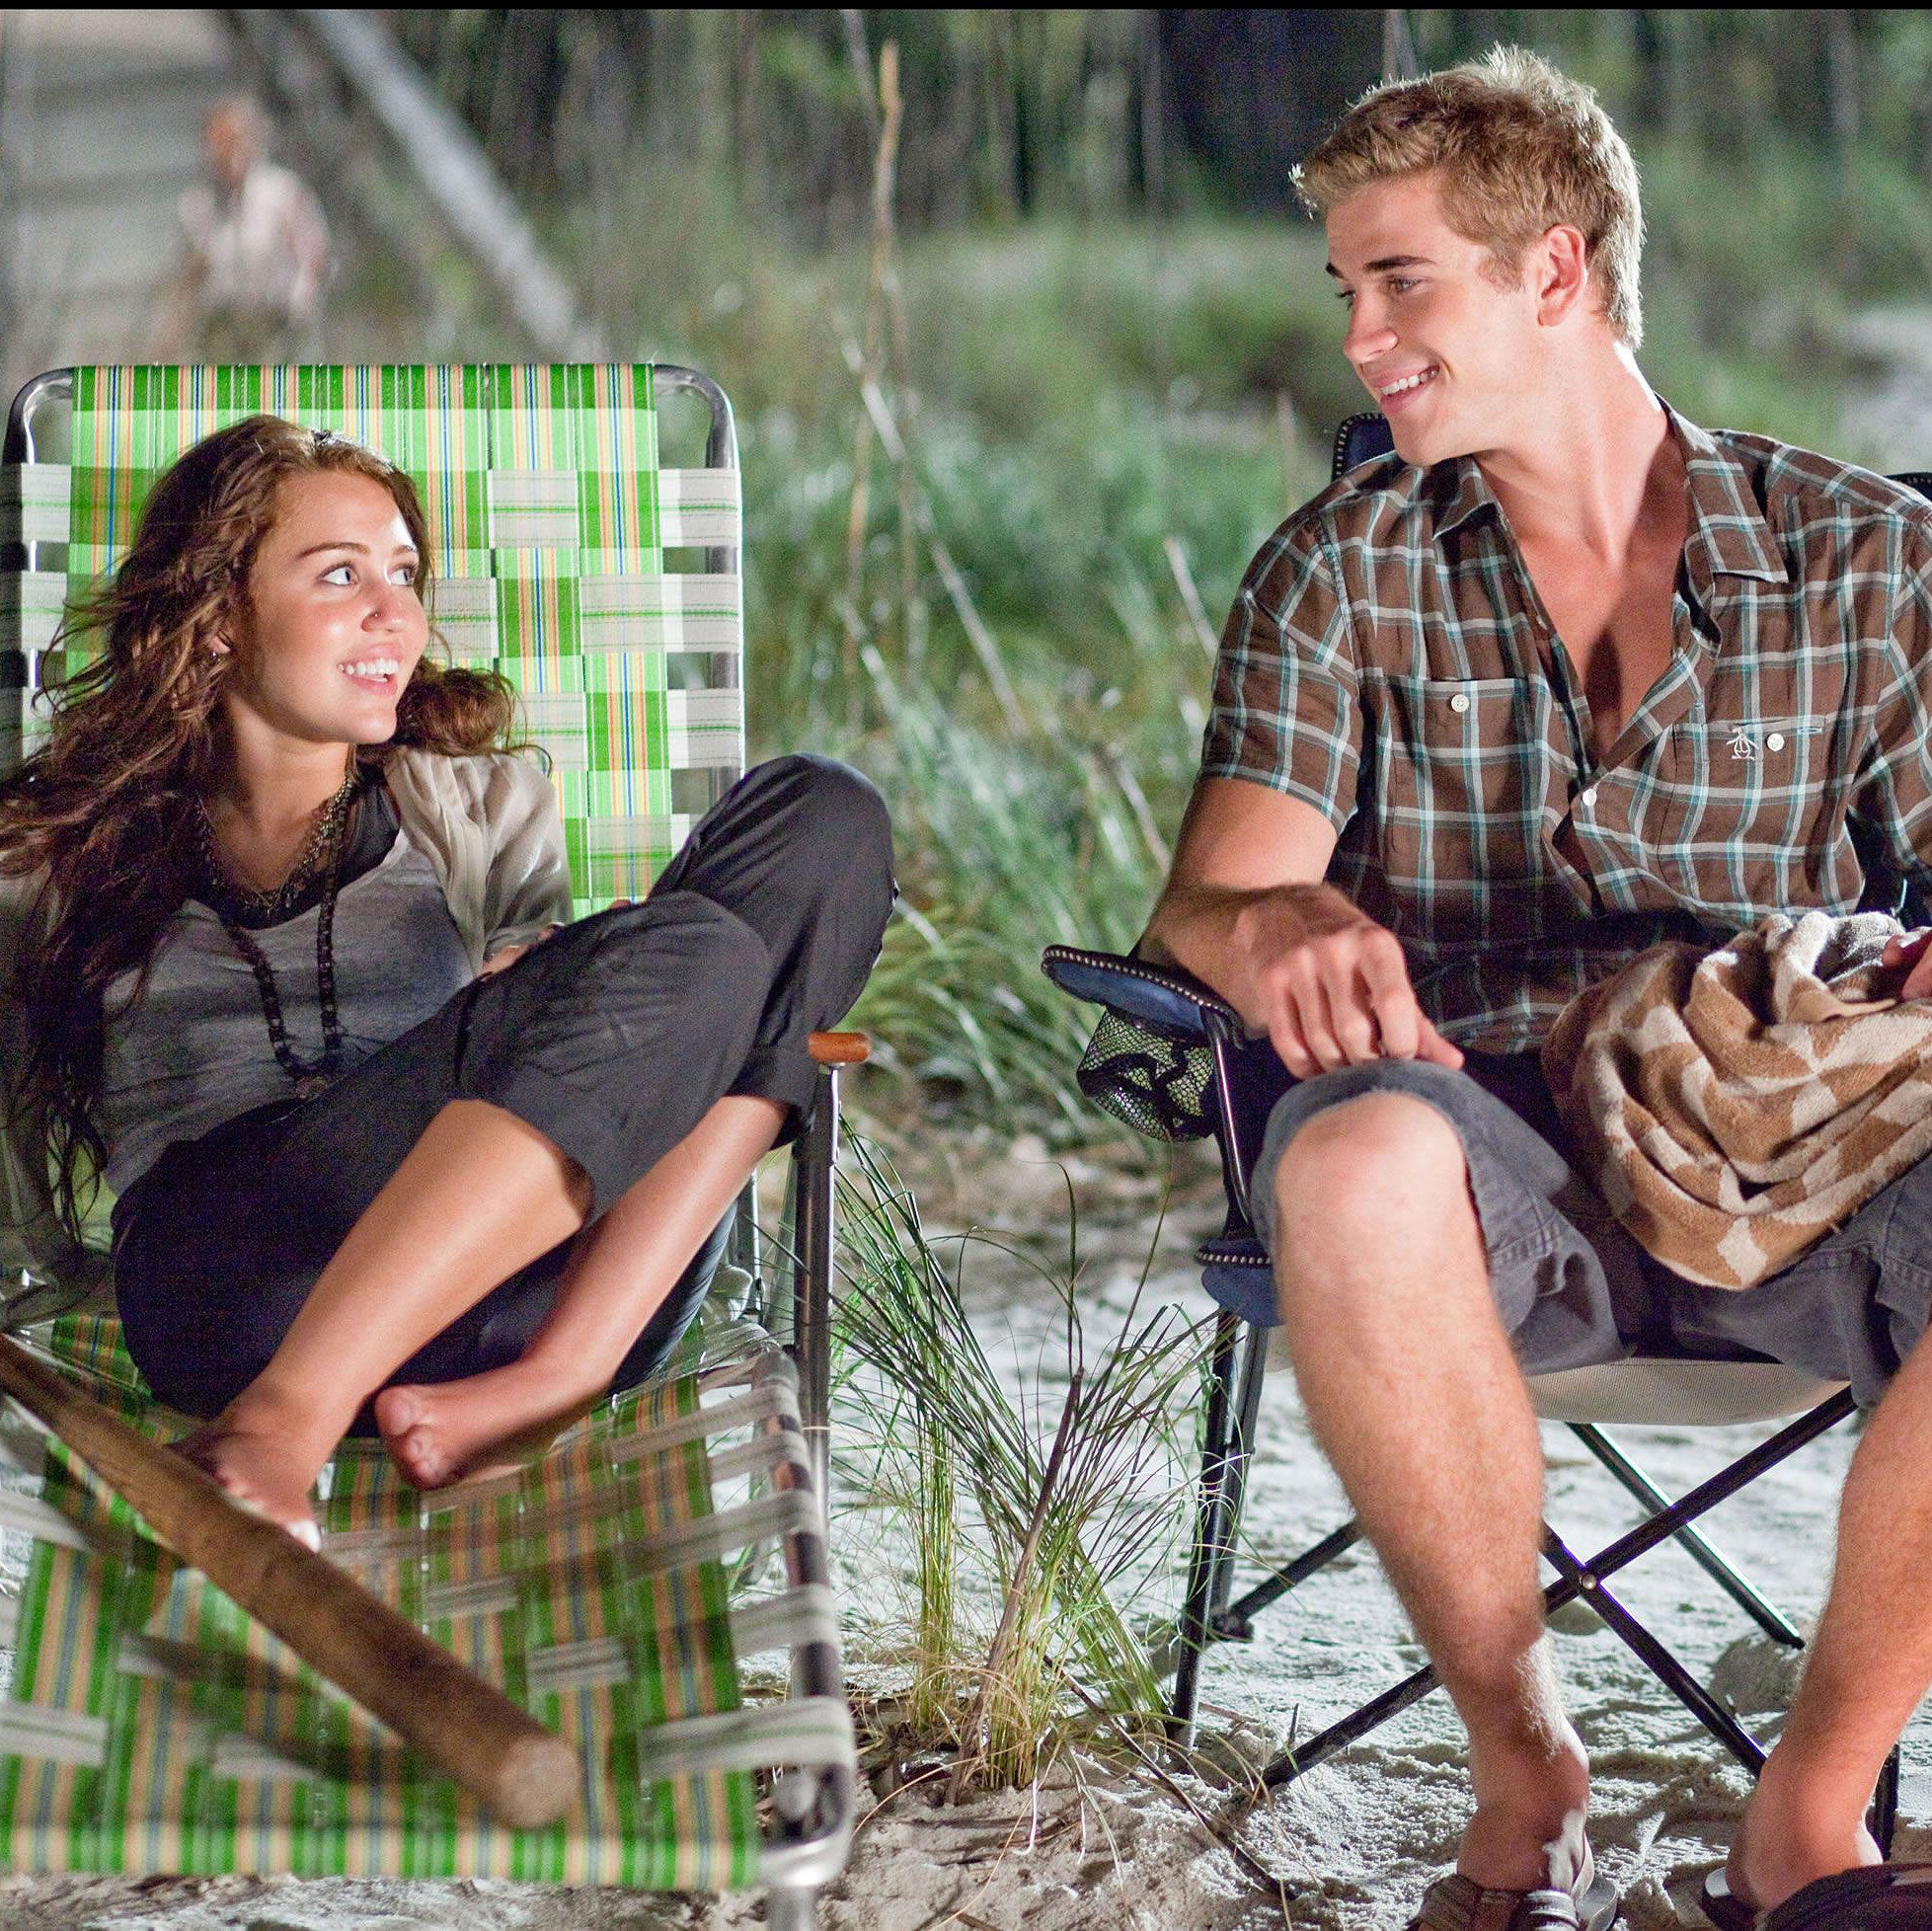 Liam Hemsworth Explains Why He Almost Wasn't in 'The Last Song'